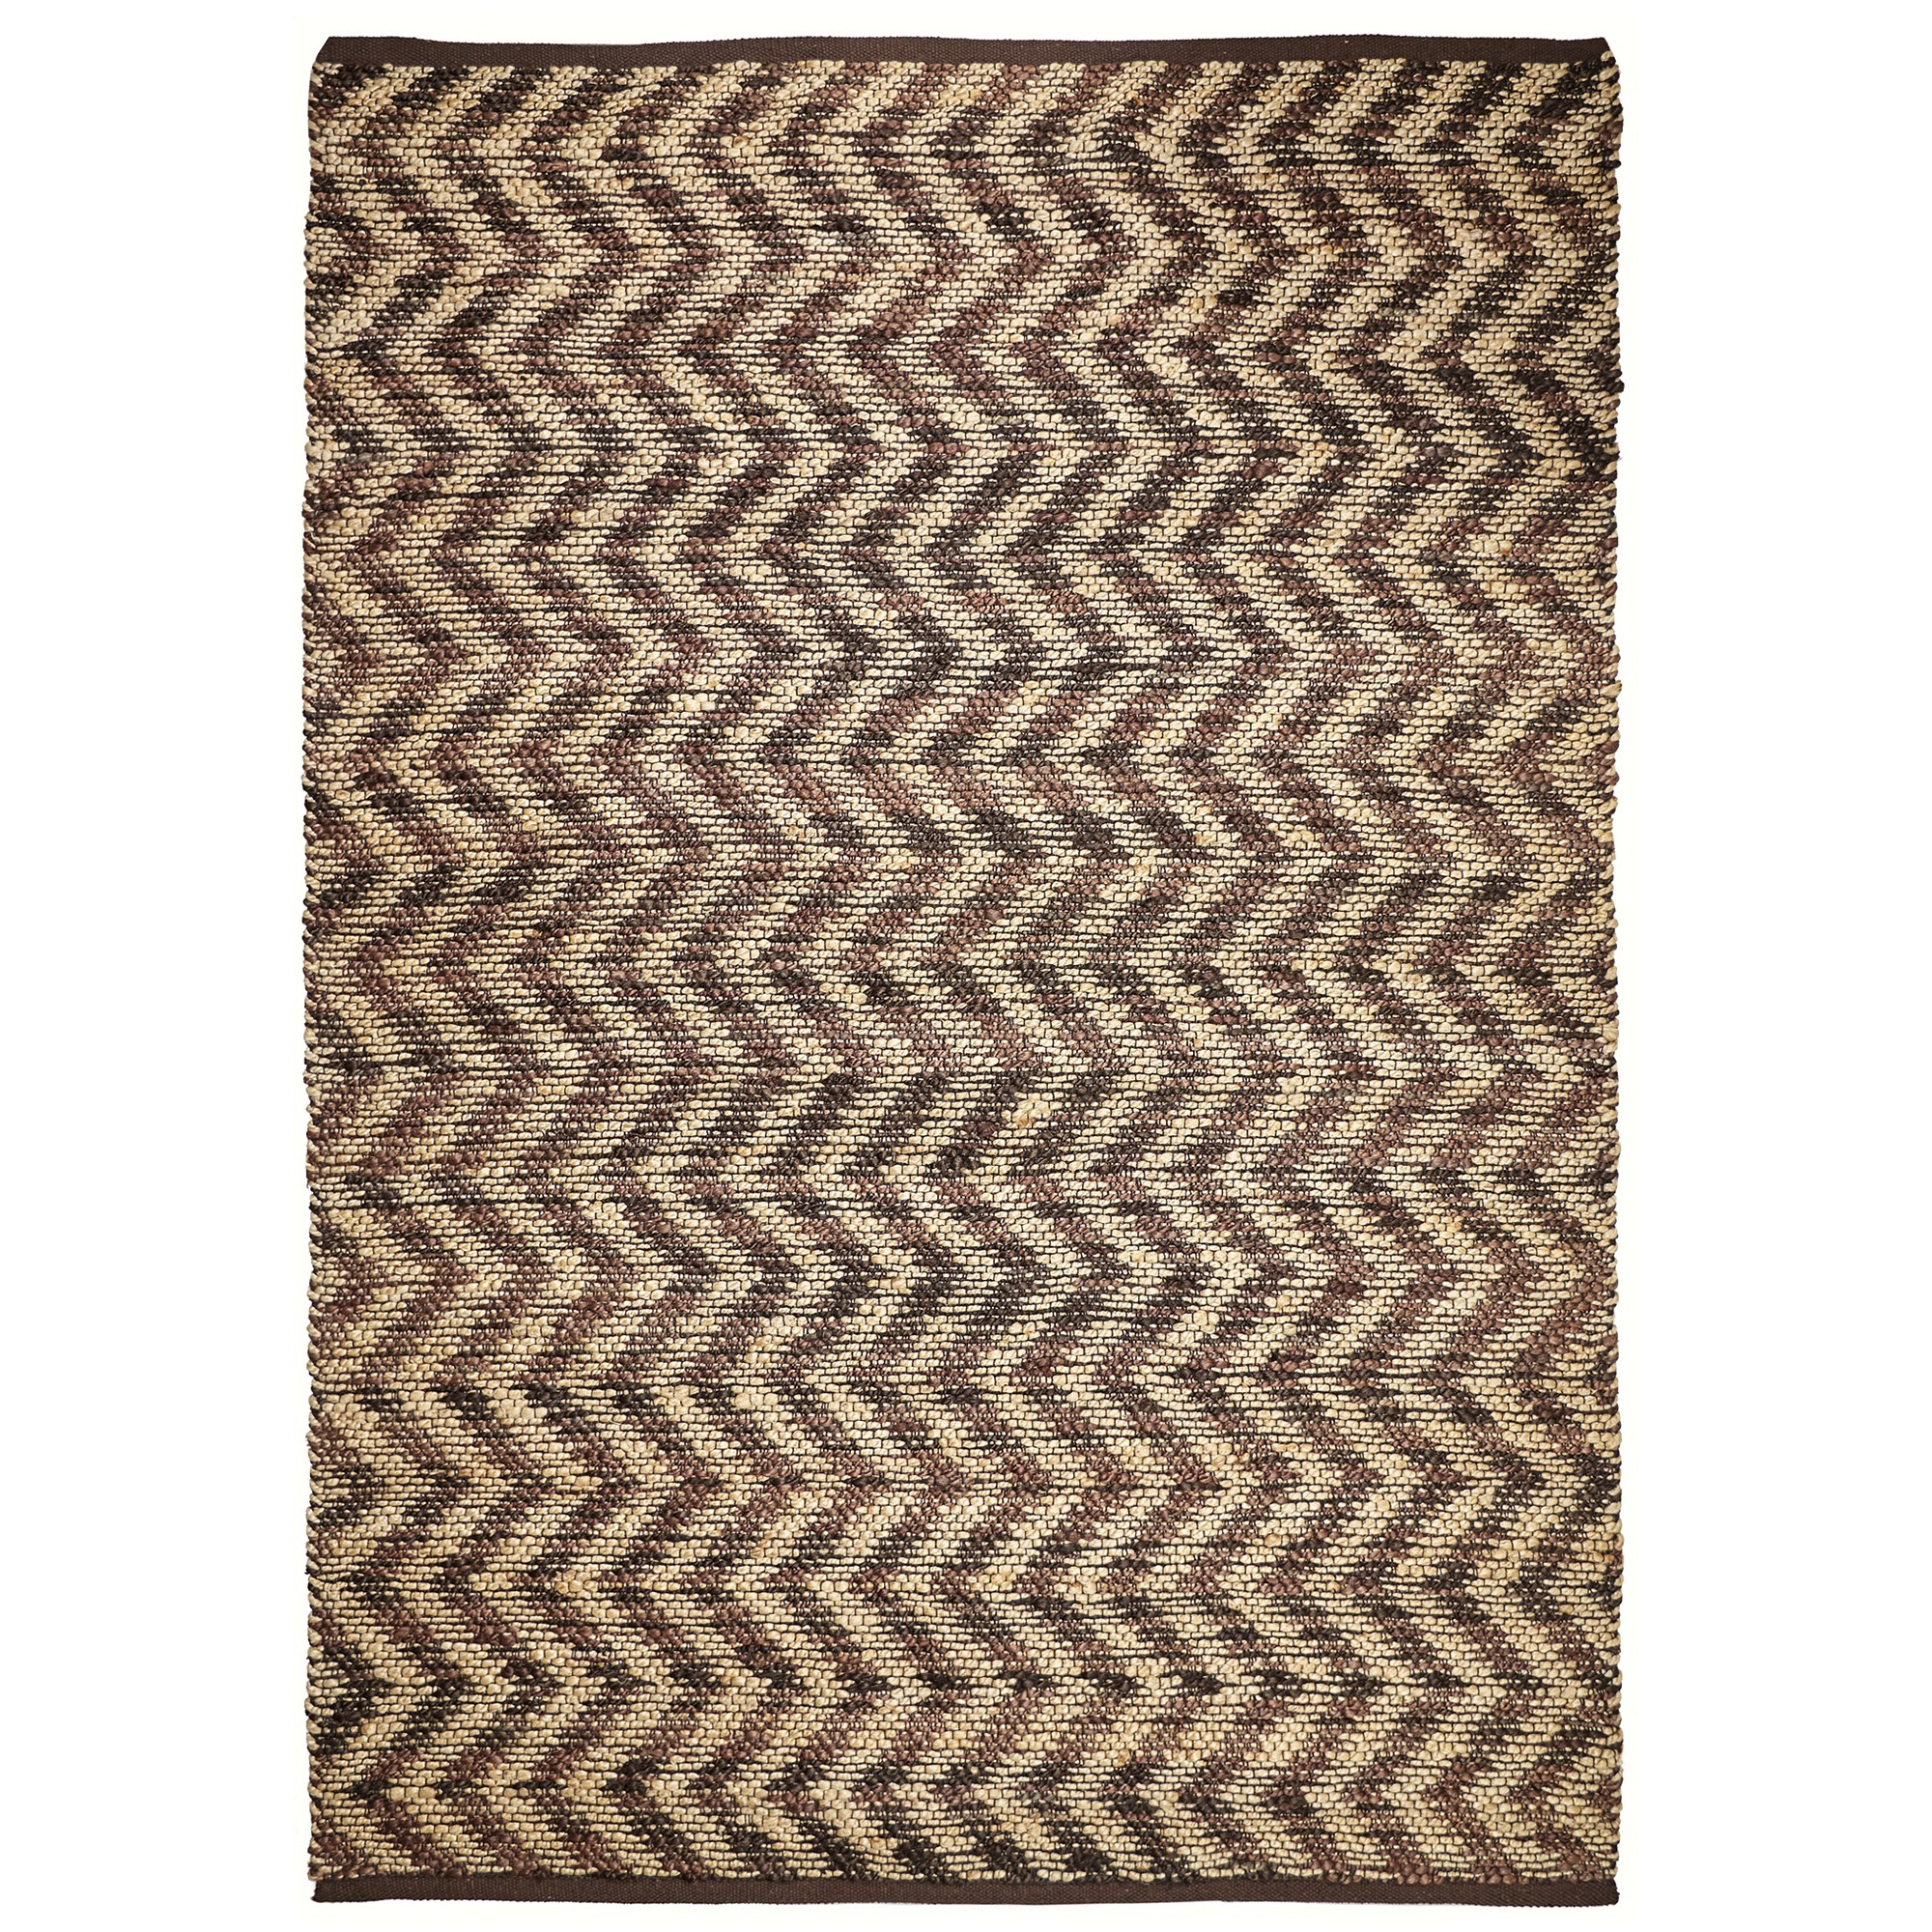 Waves Hand Knotted Jute Rug, 320x230cm, Brown